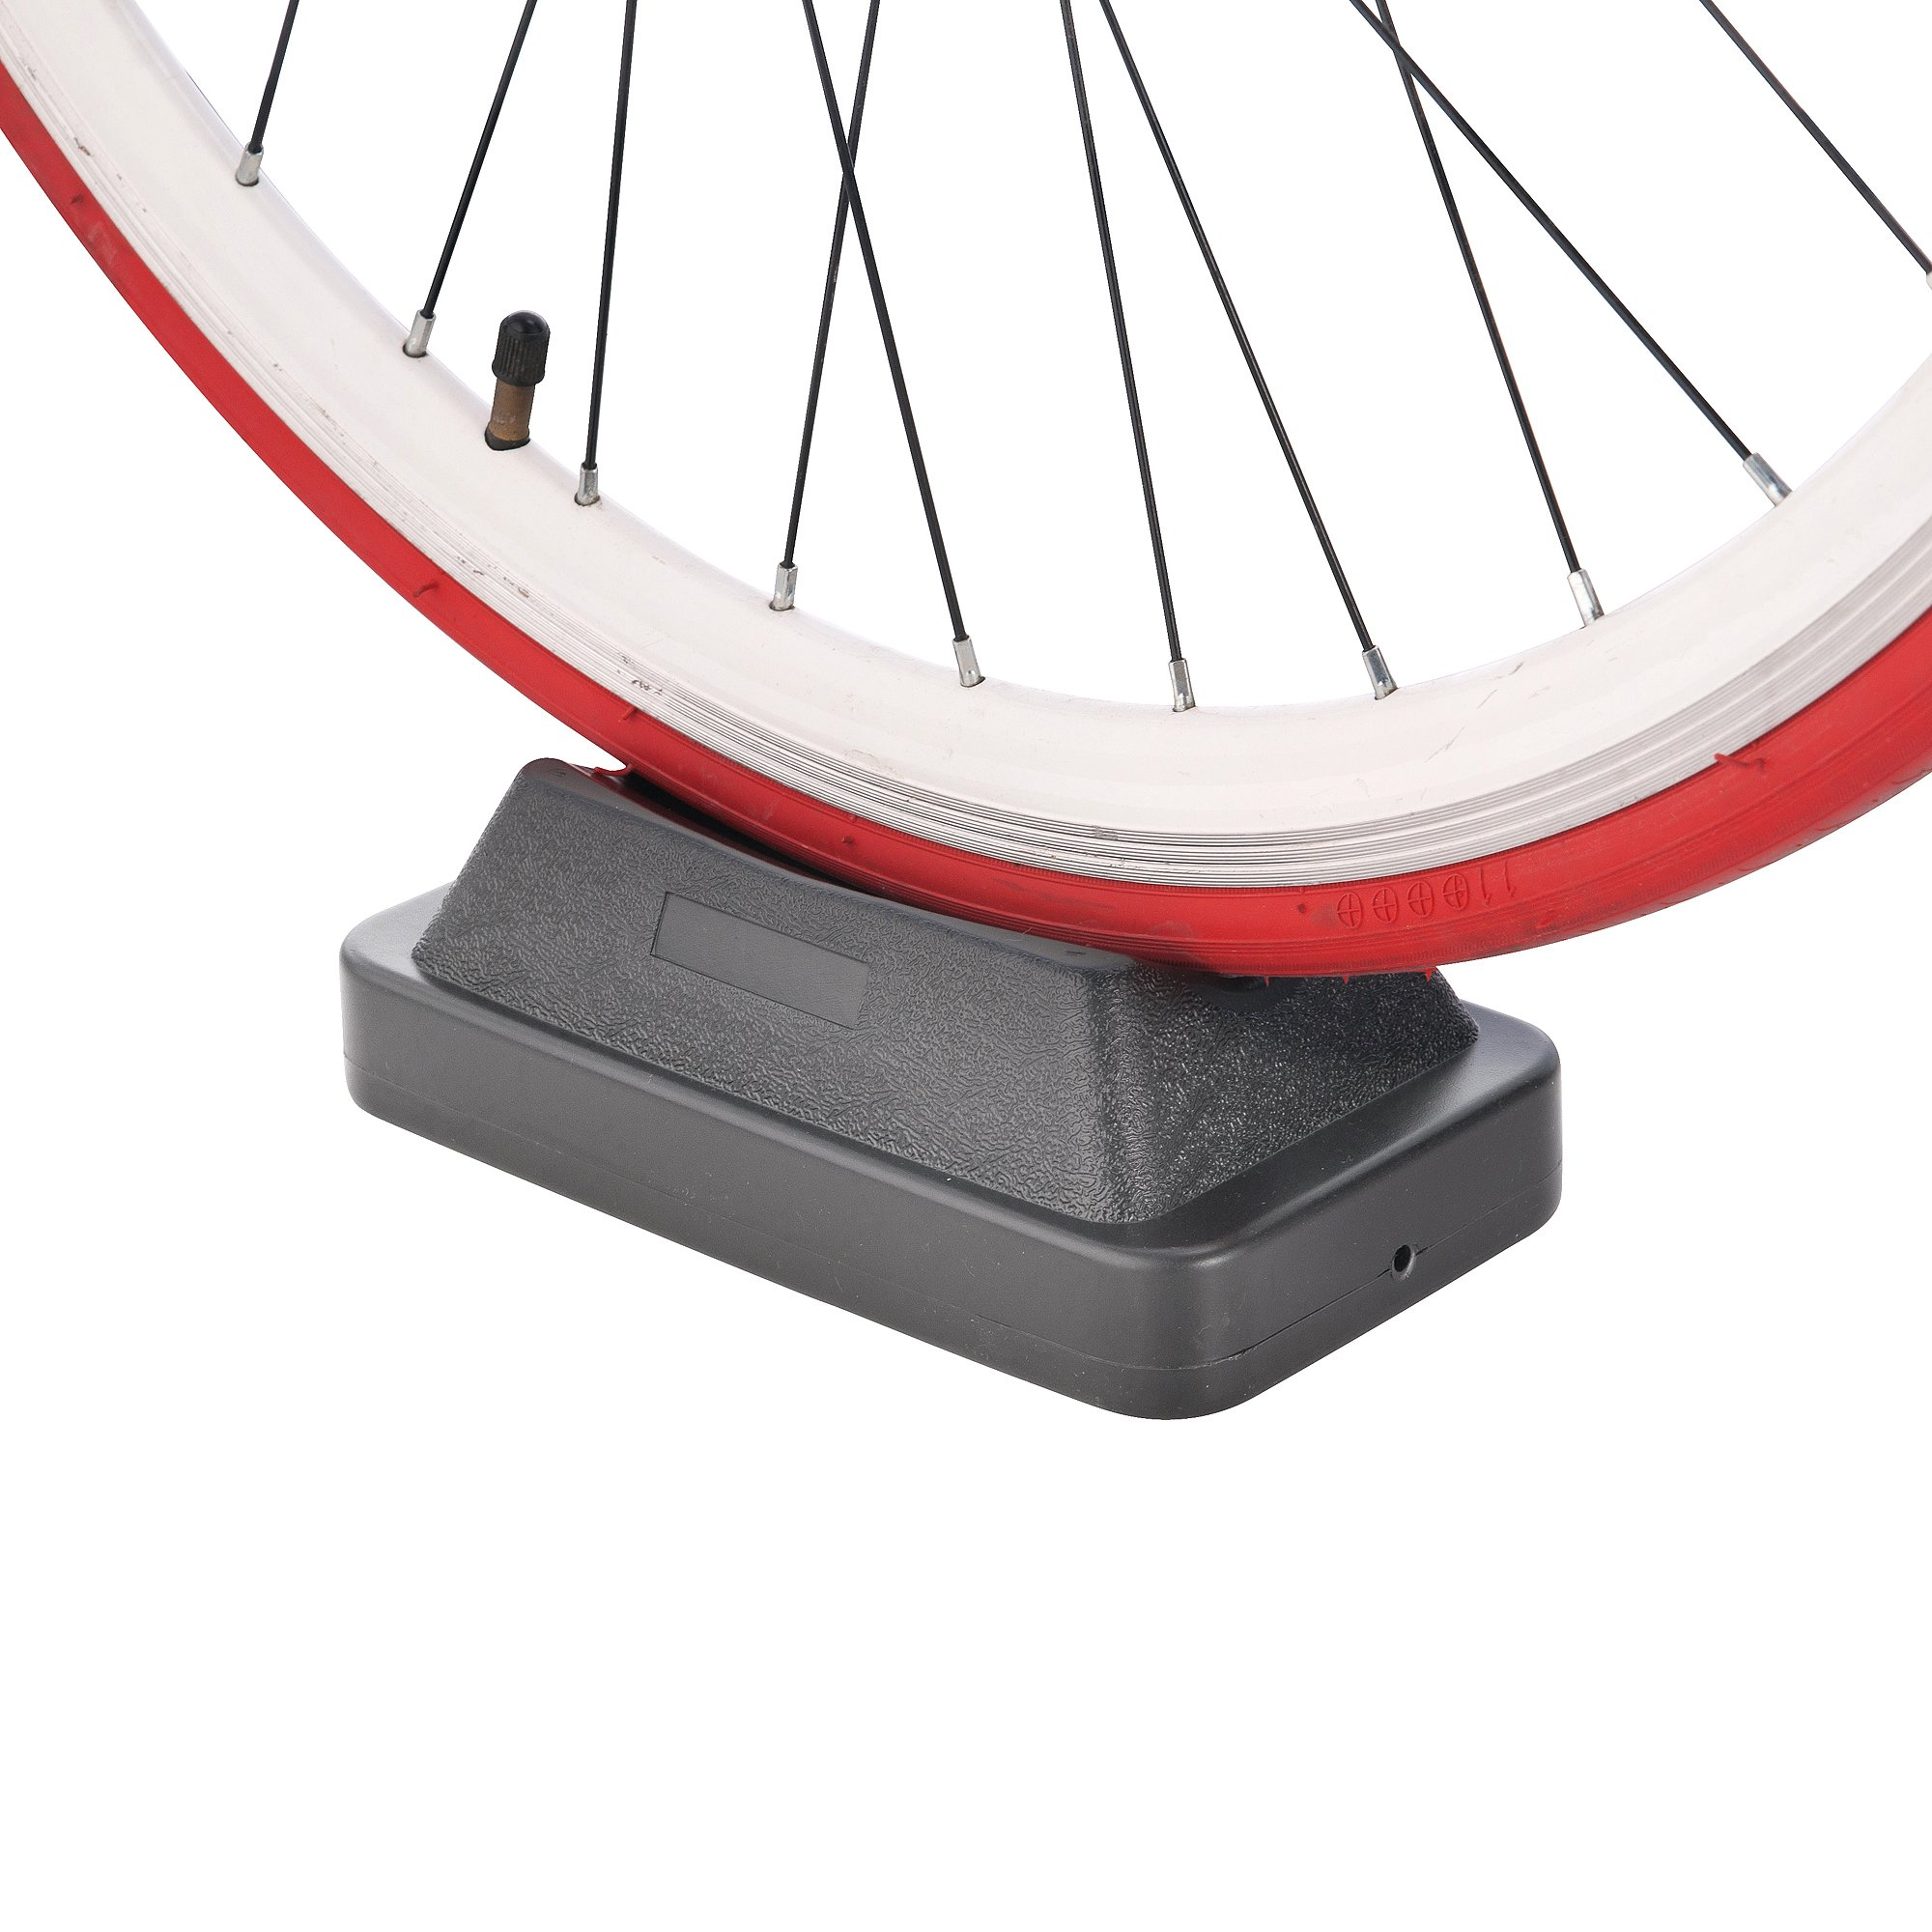 Bike Lane Pro Trainer Bicycle Indoor Trainer Exercise Machine Ride All Year by Bike Lane (Image #9)